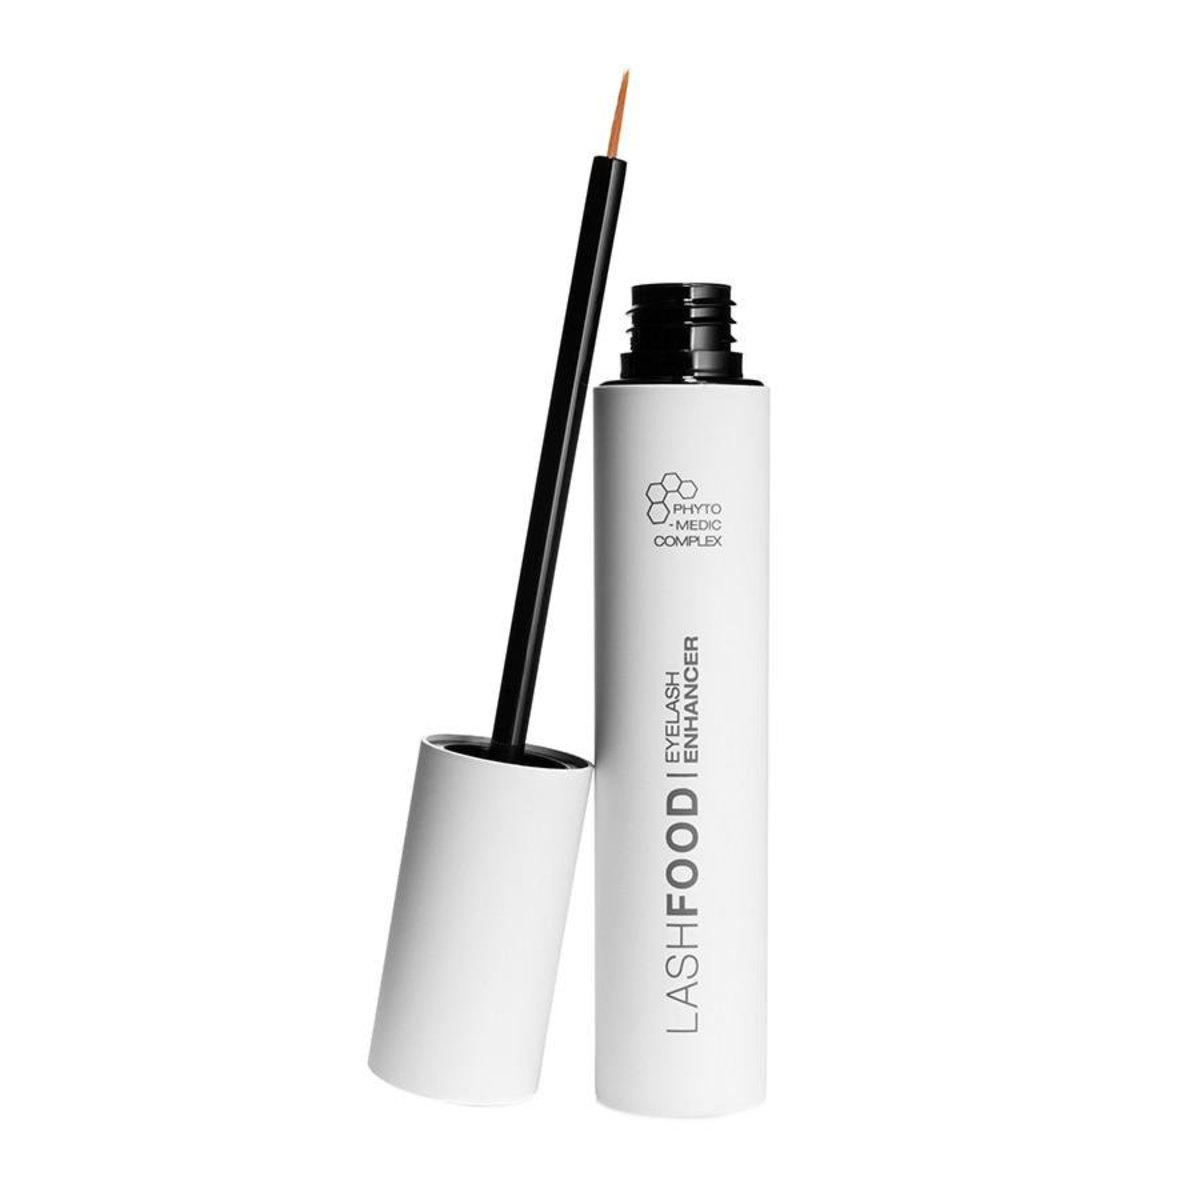 The Most Natural Eyelash Growth Serums on the Market Today